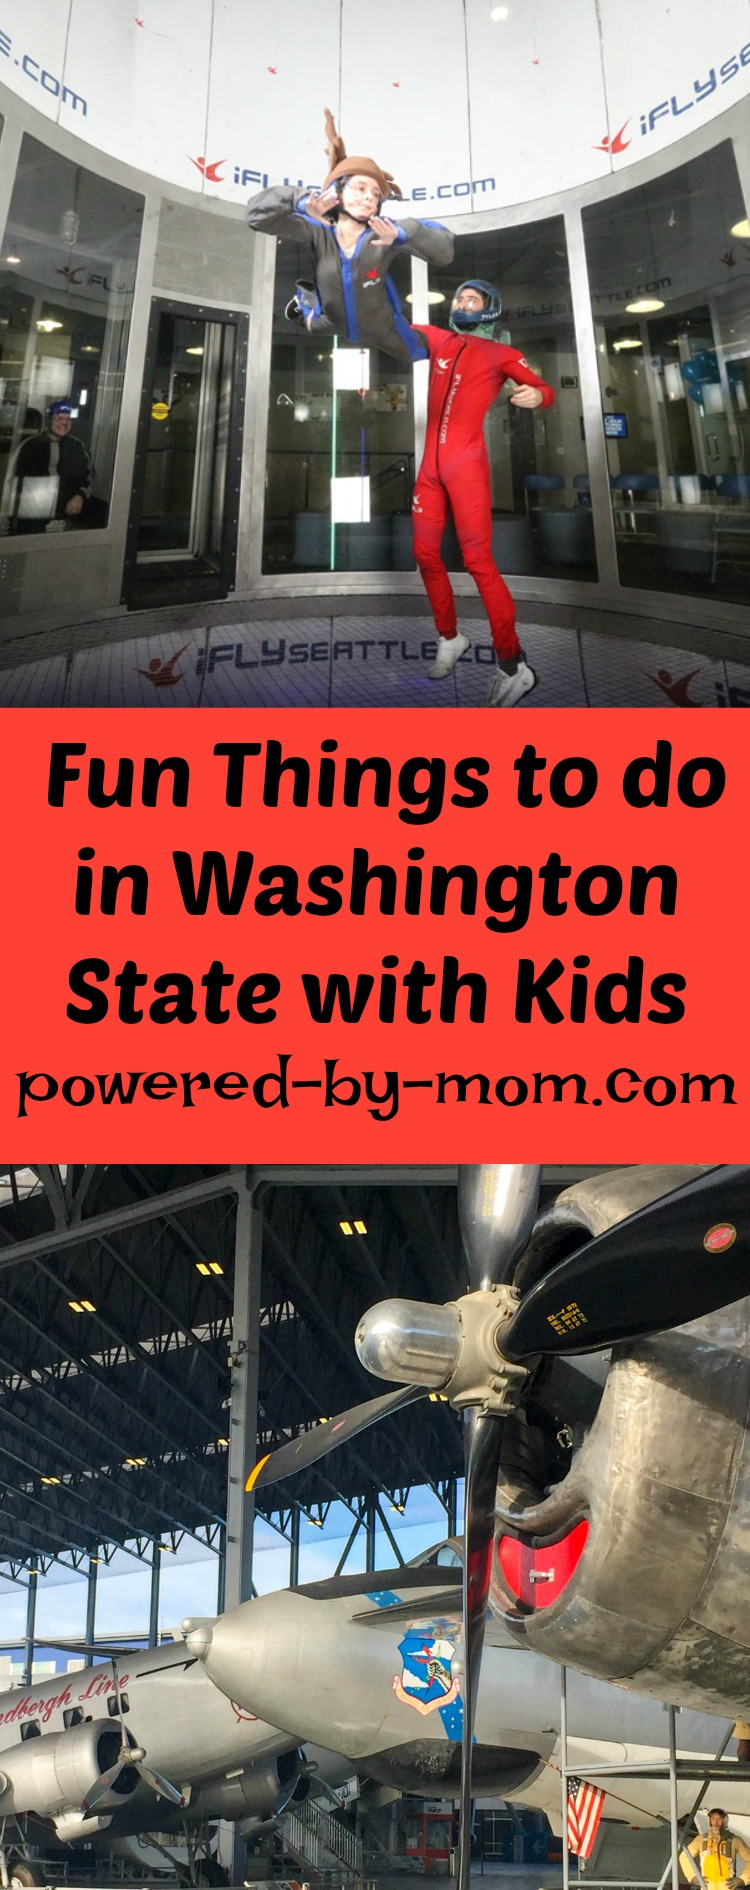 10 Things to do in Washington State with Kids - Seattle